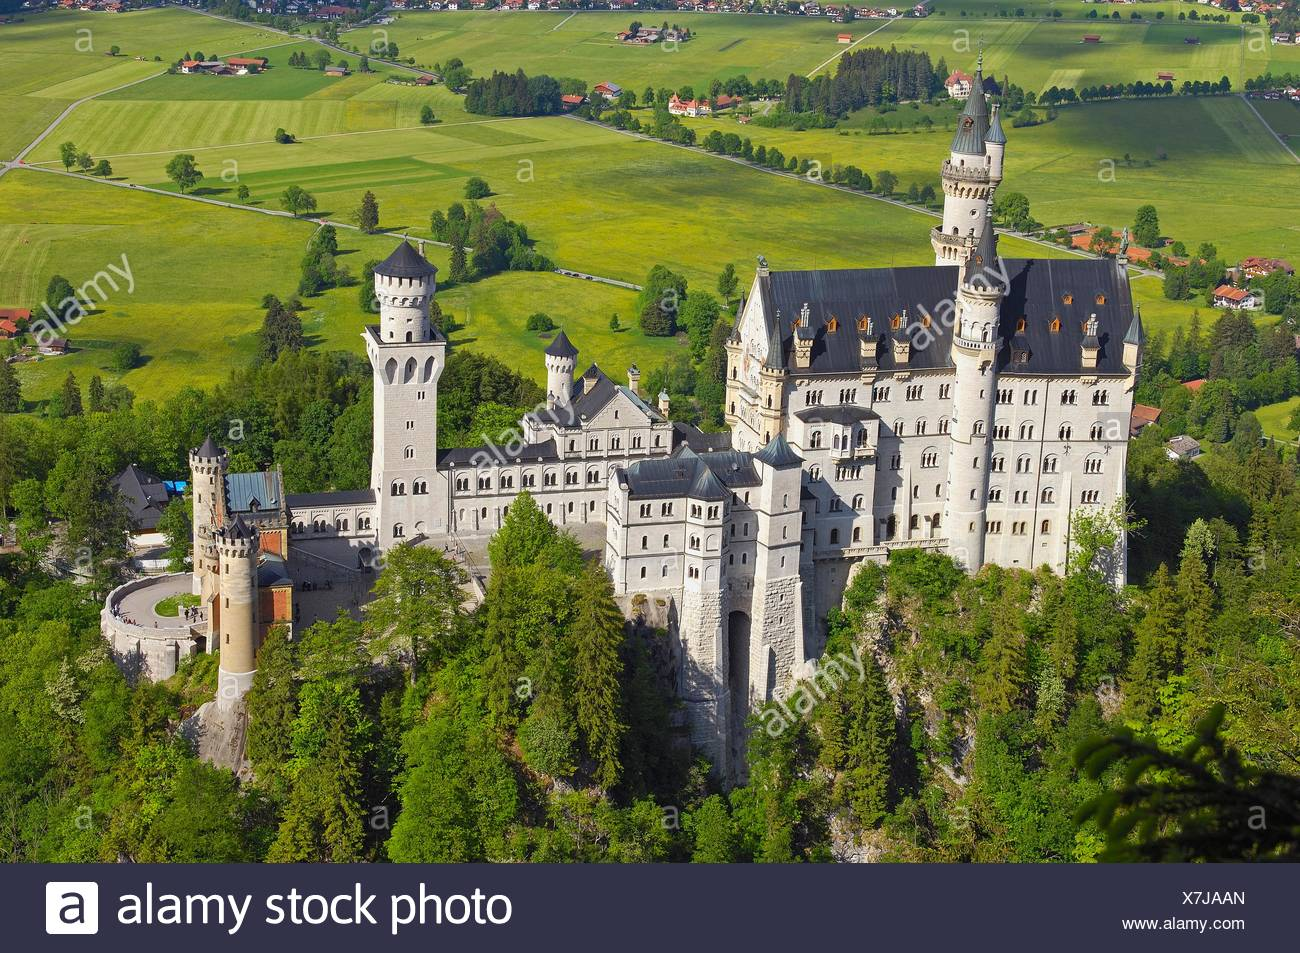 schloss neuschwanstein schloss neuschwanstein allg u f ssen romantische stra e romantic. Black Bedroom Furniture Sets. Home Design Ideas